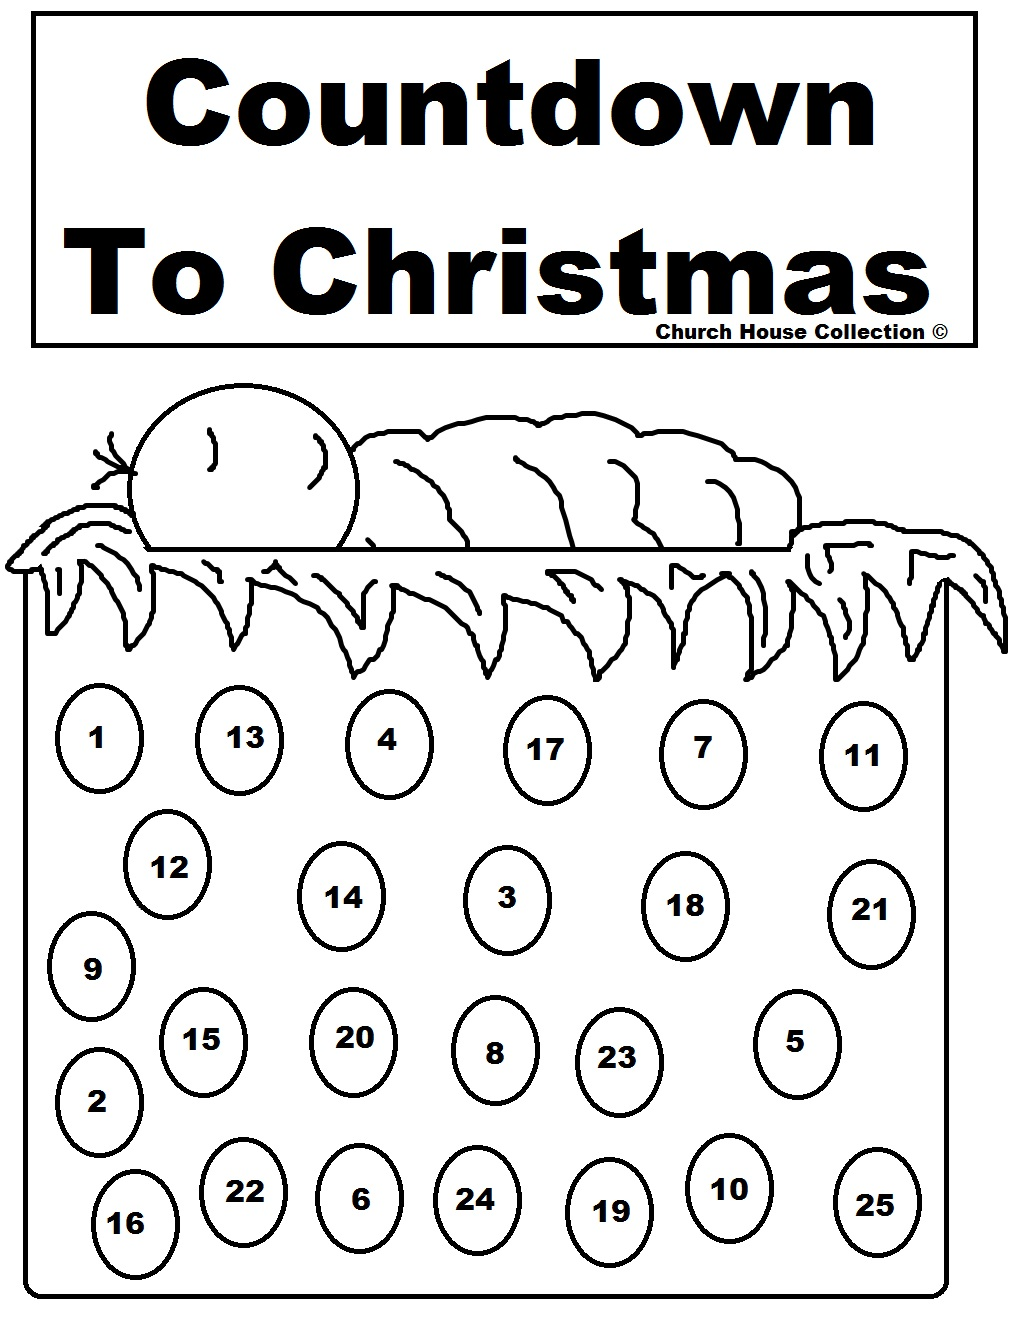 Advent Coloring Pages & Activities for Kids - Sunday School Works | 1319x1019